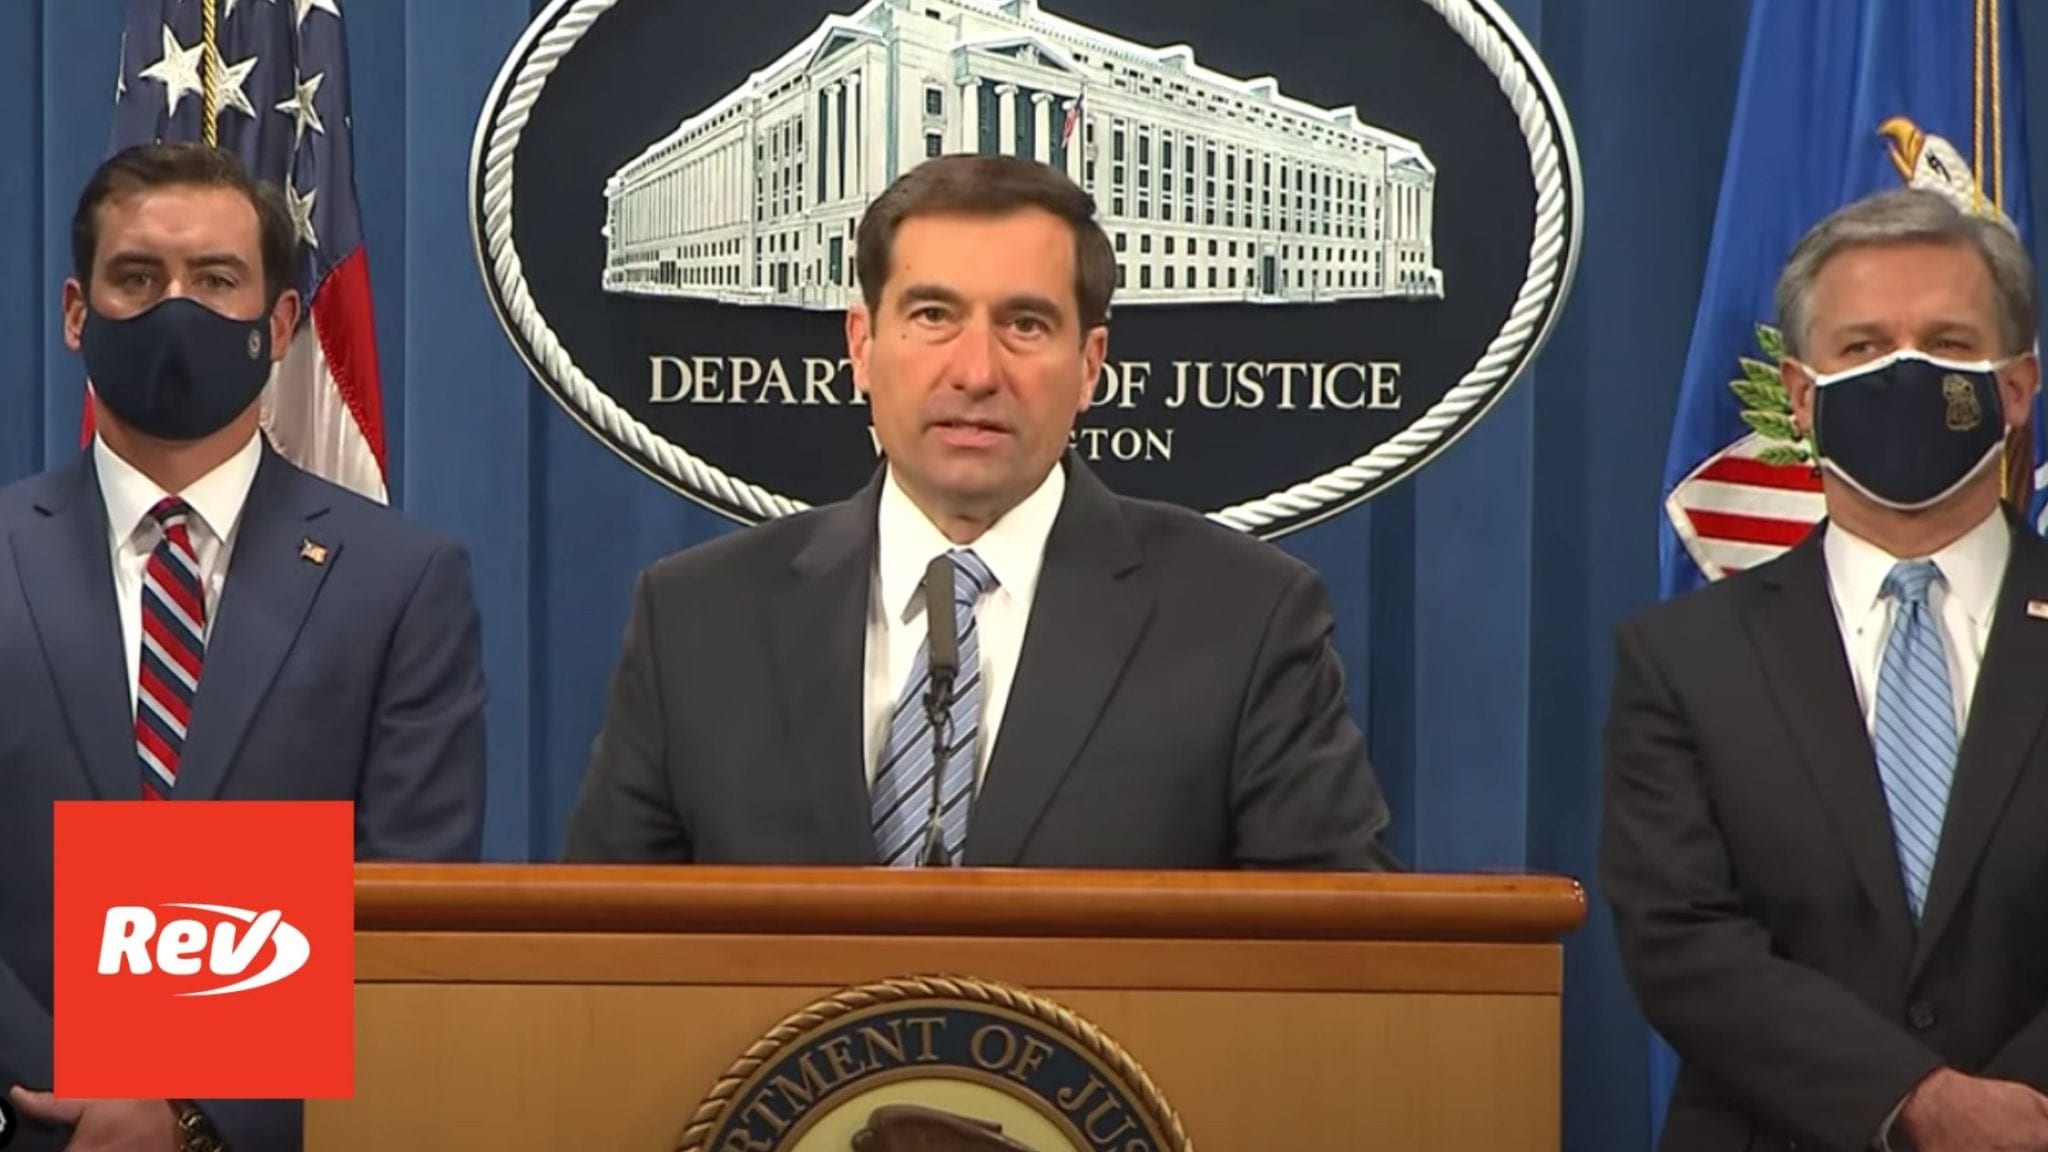 DOJ Press Conference on Indictment of ISIS Operatives Transcript October 7